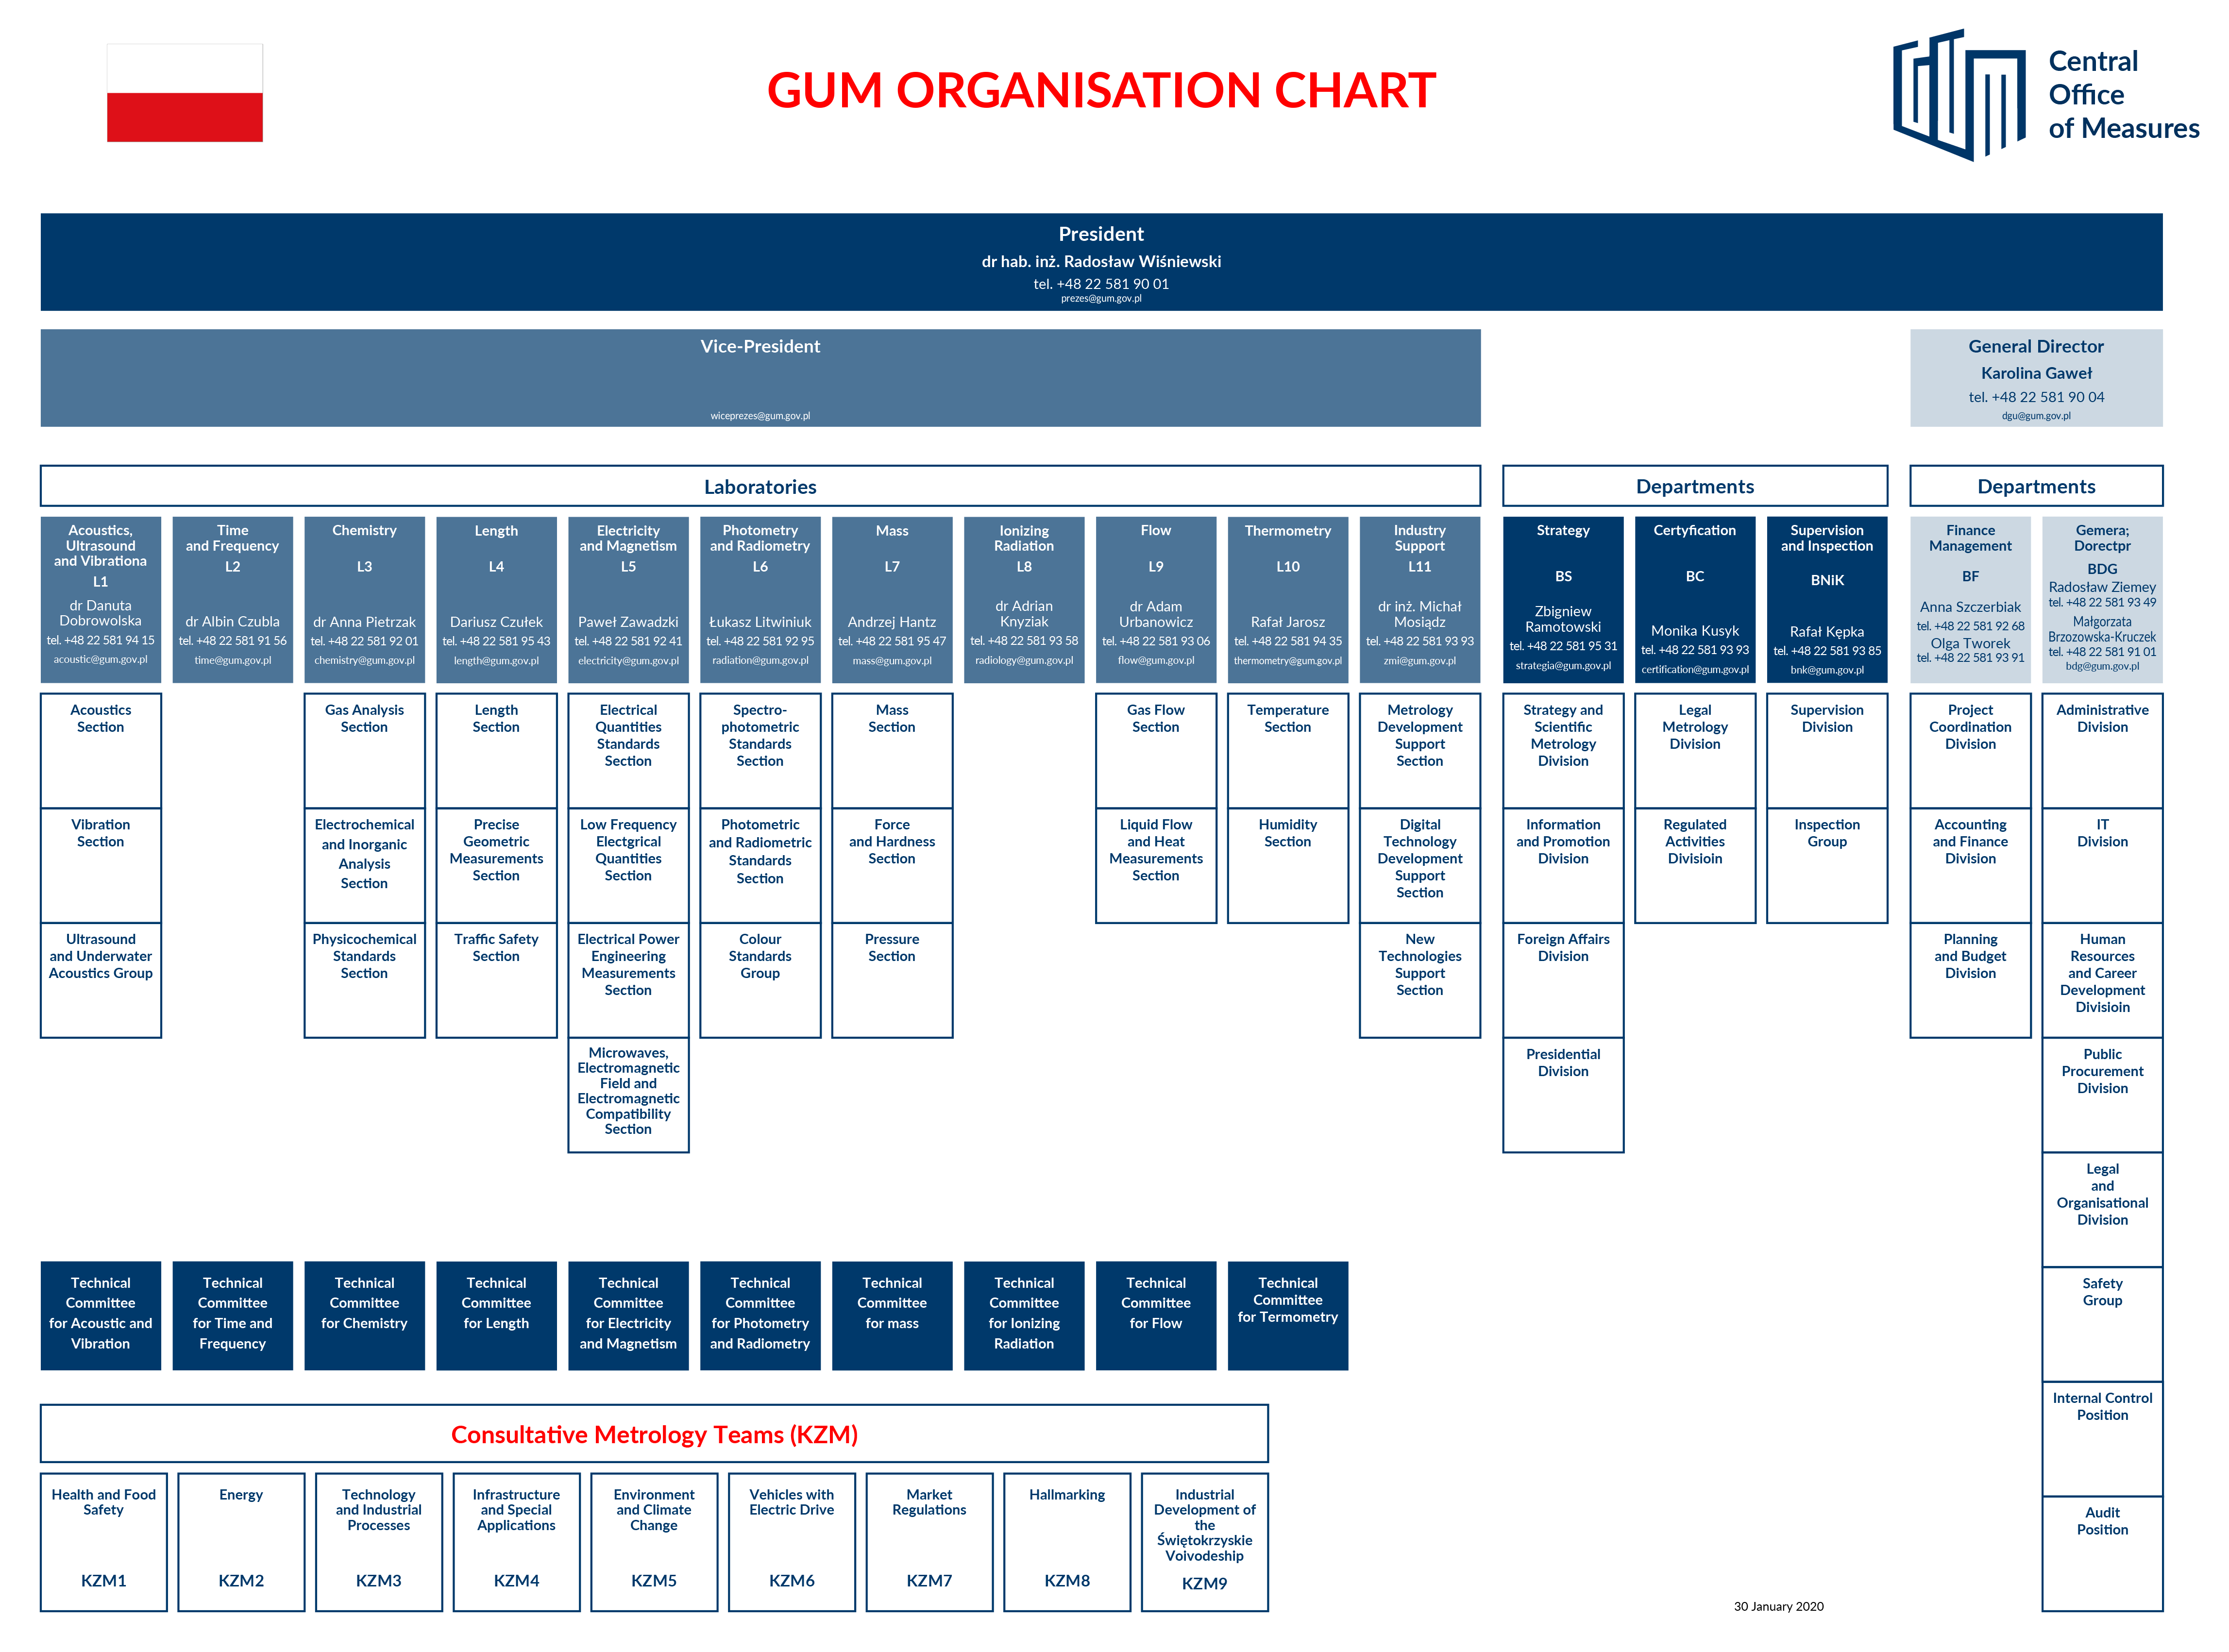 Organizational chart of GUM